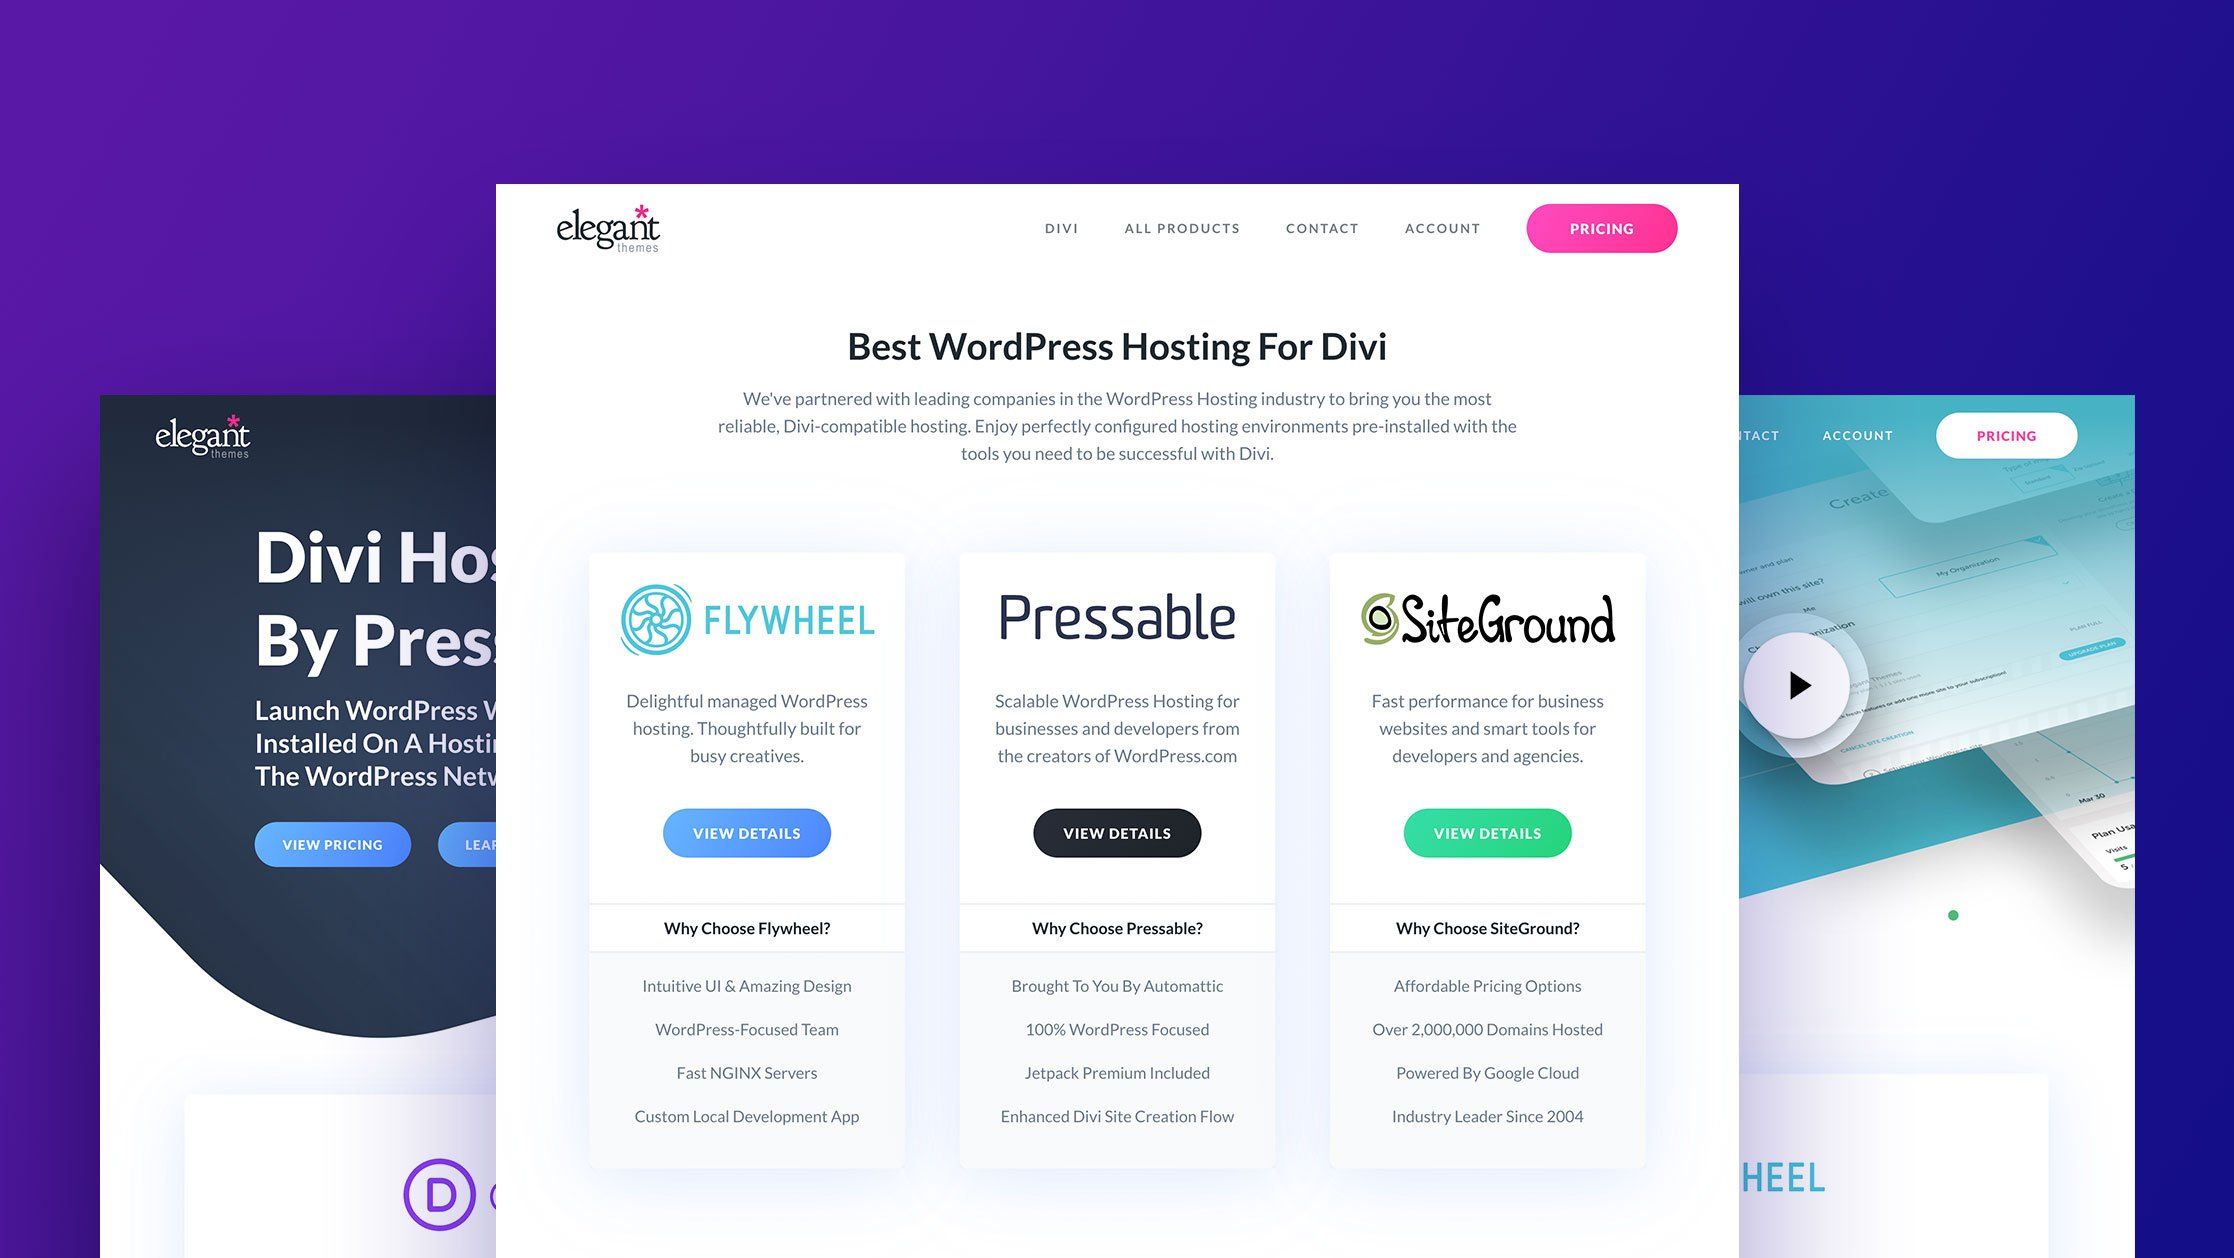 Introducing Divi Hosting! The Best New Hosting Solution For Divi